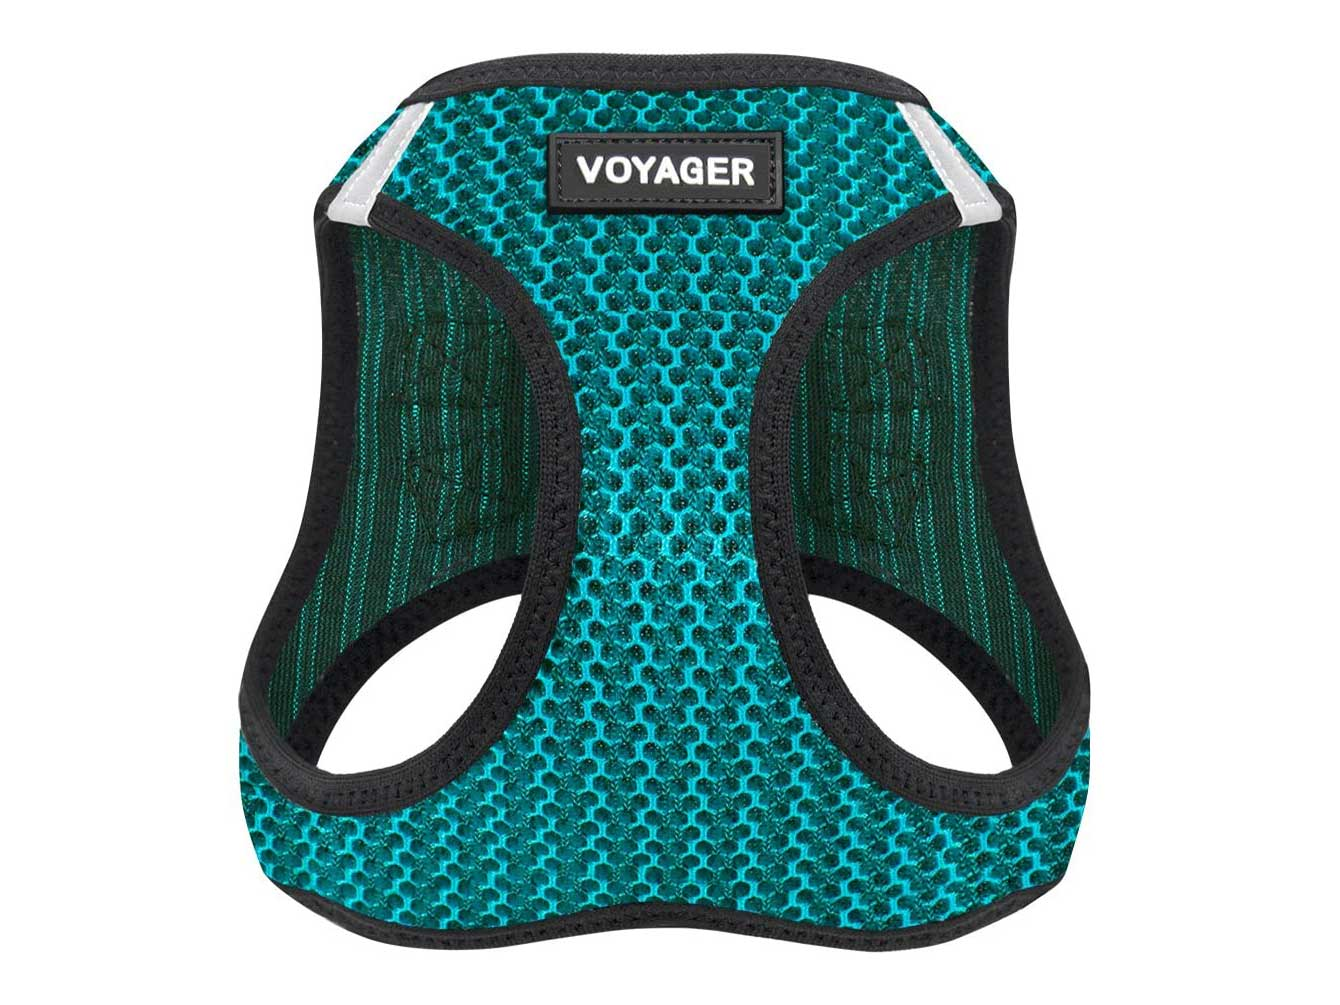 Voyager Step-in Air Harness - All Weather Mesh, Step in Vest Harness for Small Dogs and Cats by Best Pet Supplies